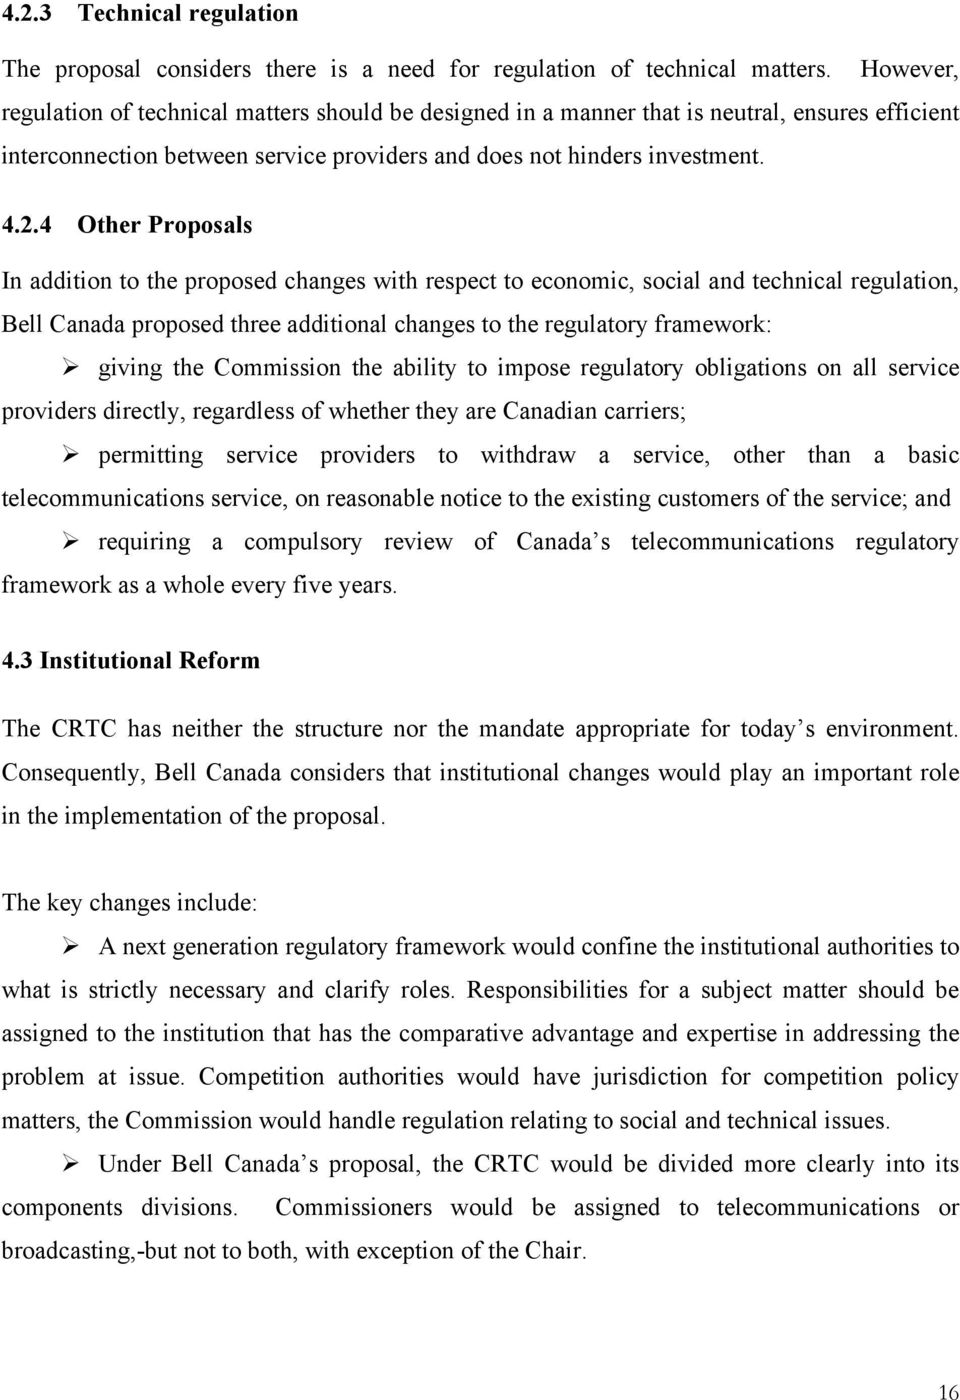 4 Other Proposals In addition to the proposed changes with respect to economic, social and technical regulation, Bell Canada proposed three additional changes to the regulatory framework: giving the